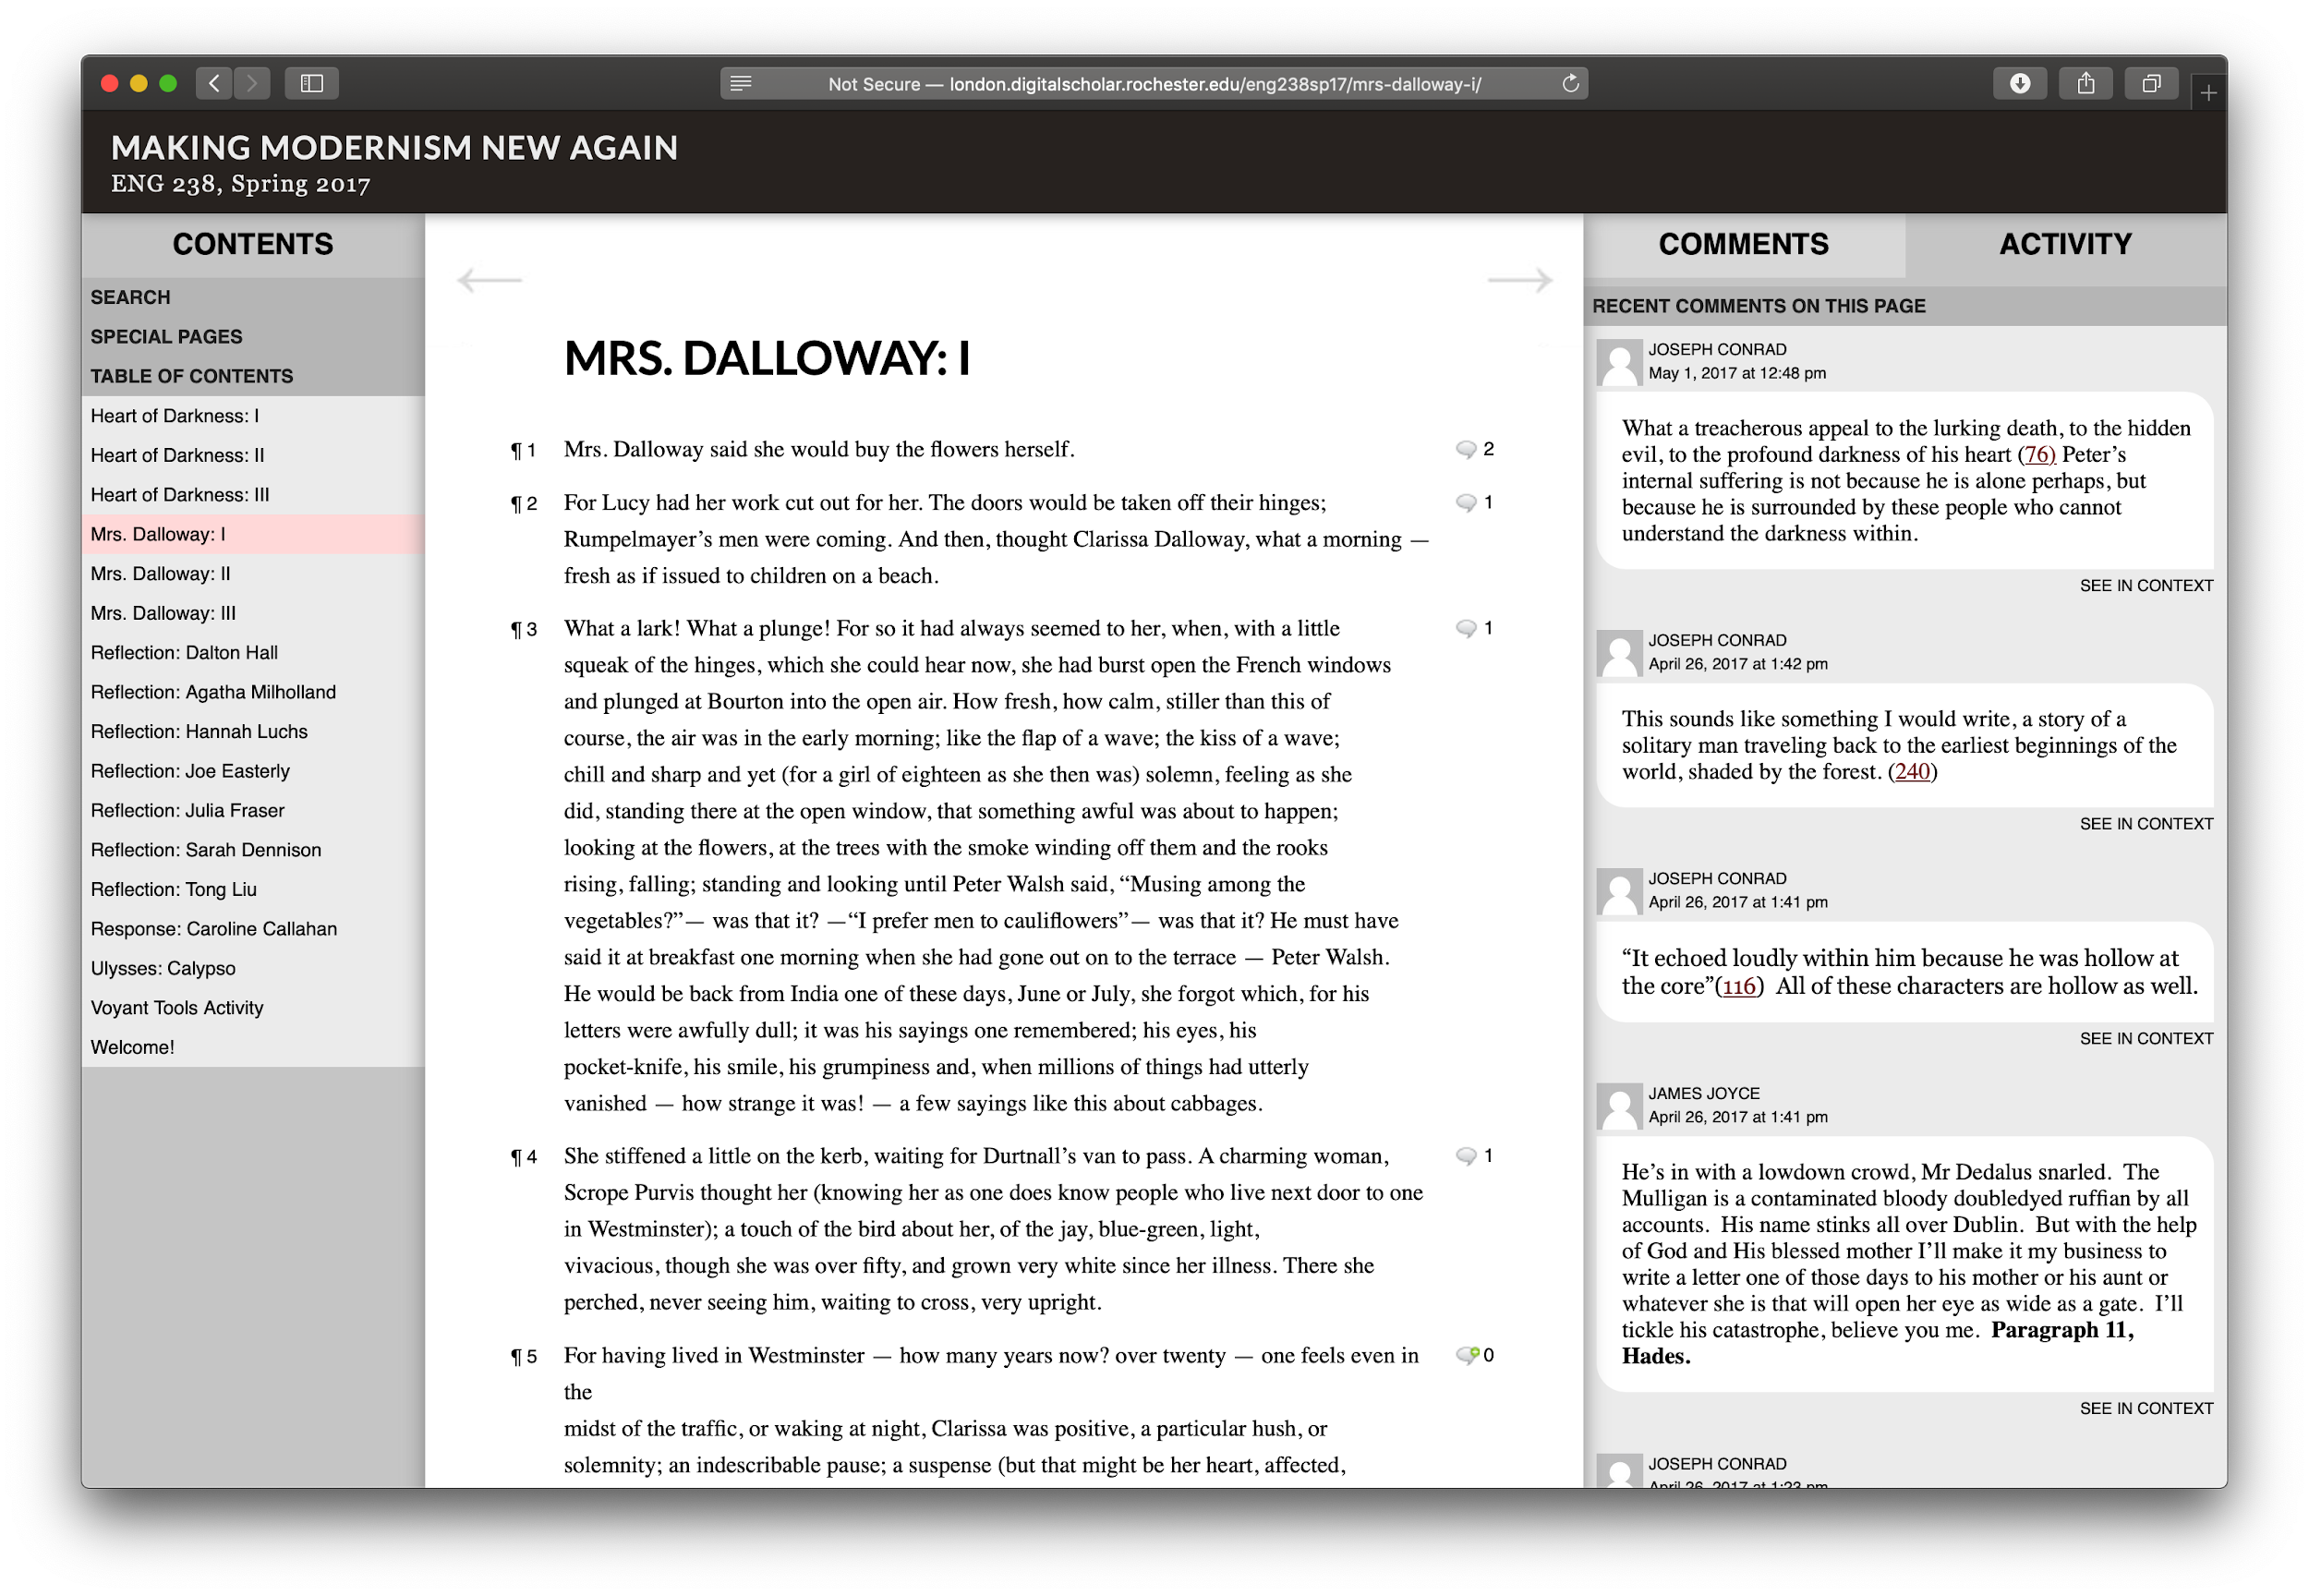 Contents menu on left, Mrs. Dalloway text in middle, comments thread on right